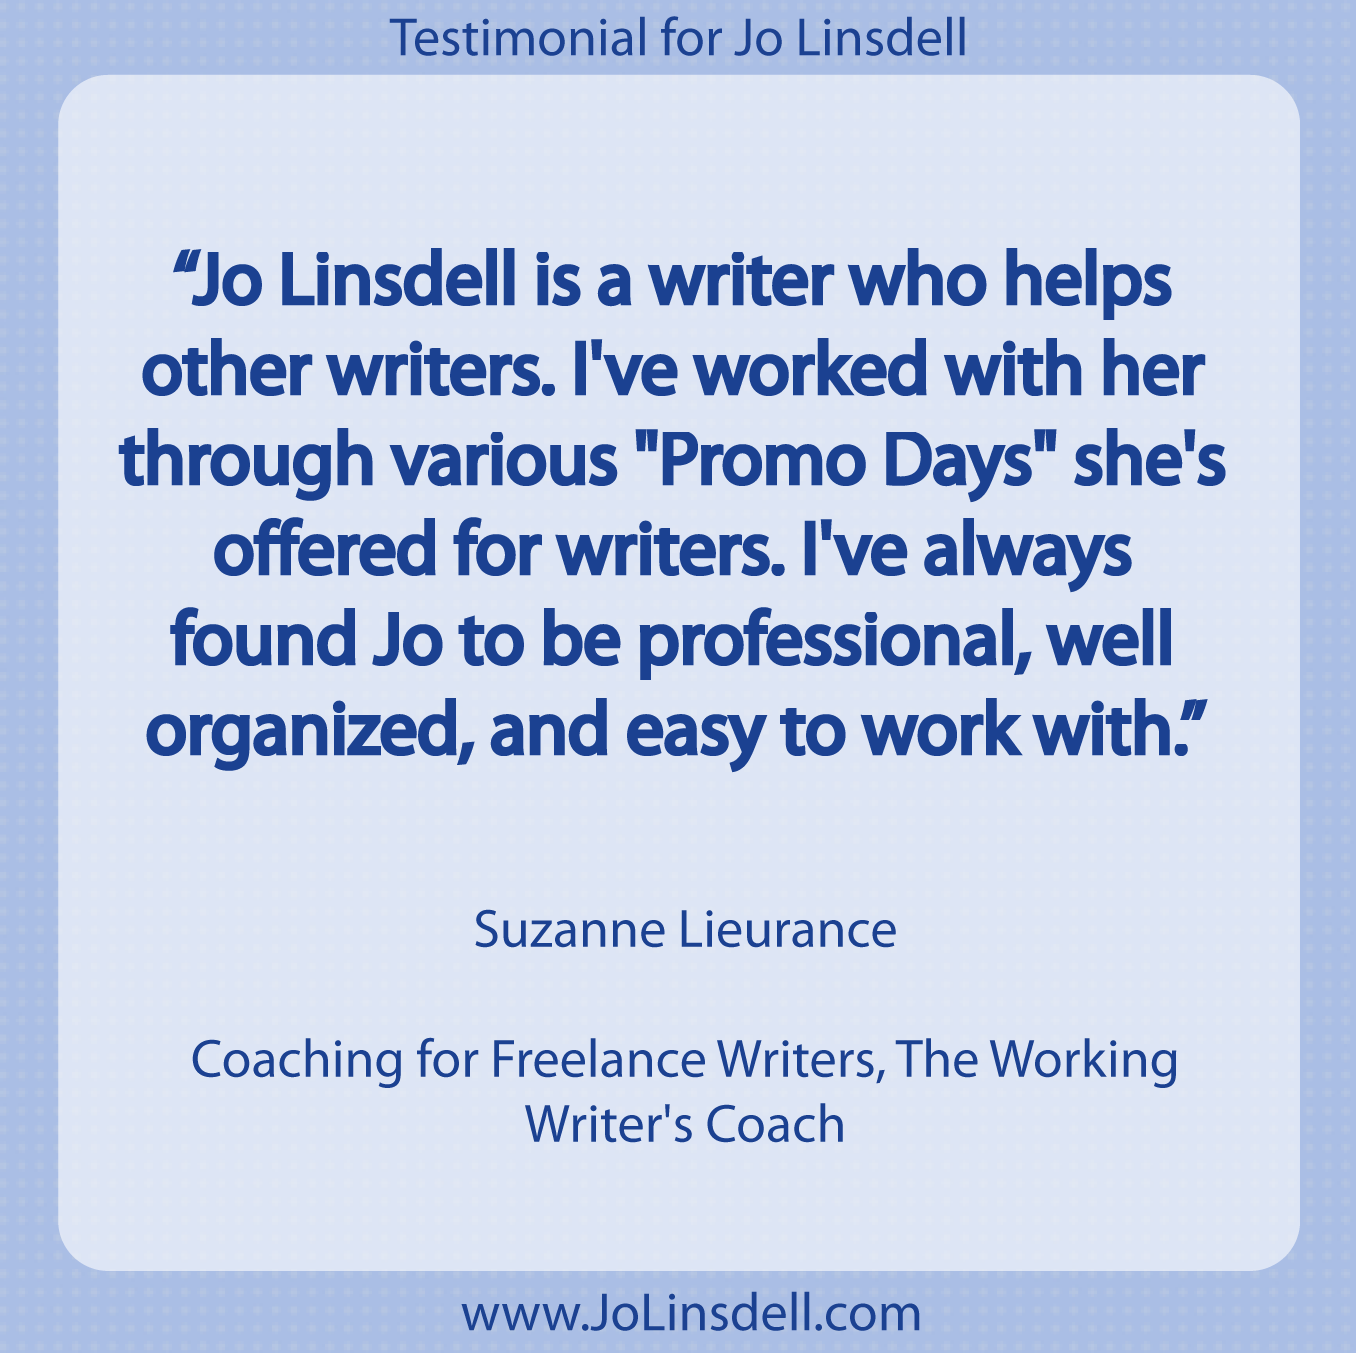 jo linsdell testimonials testimonial for jo linsdell by suzanne lieurance ""